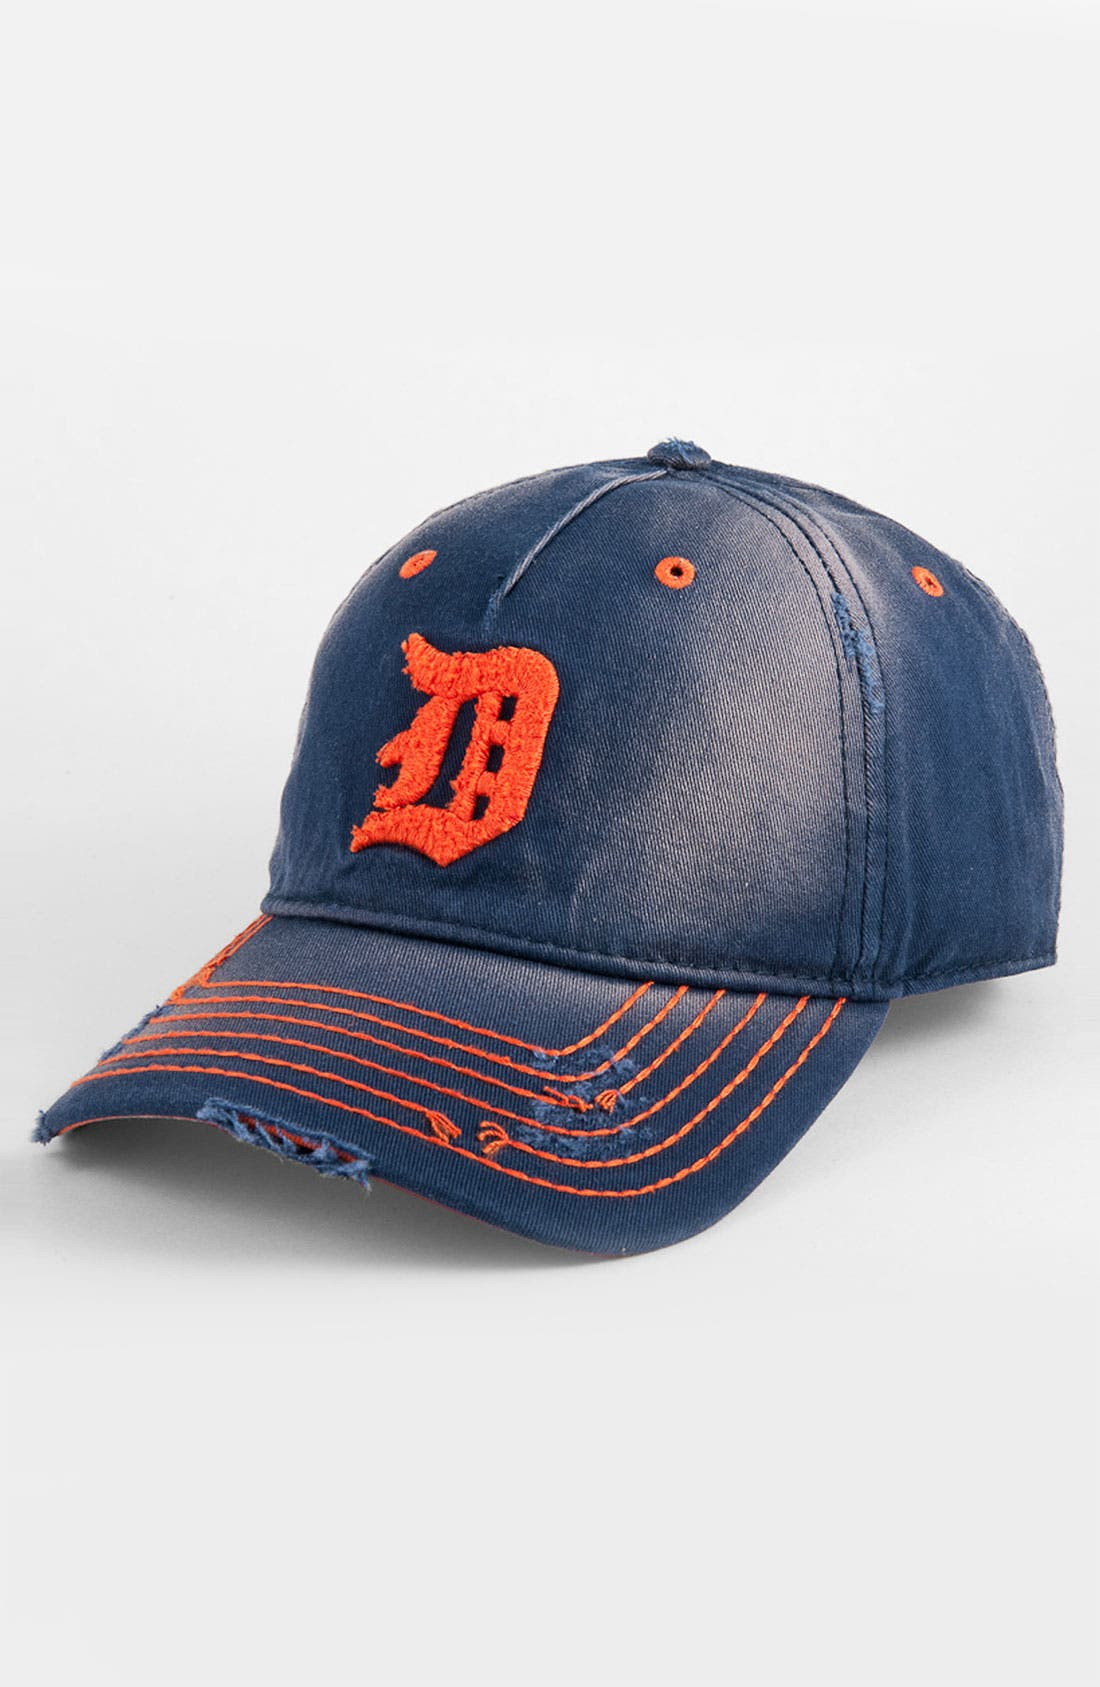 Main Image - American Needle 'Detroit Tigers' Distressed Cap